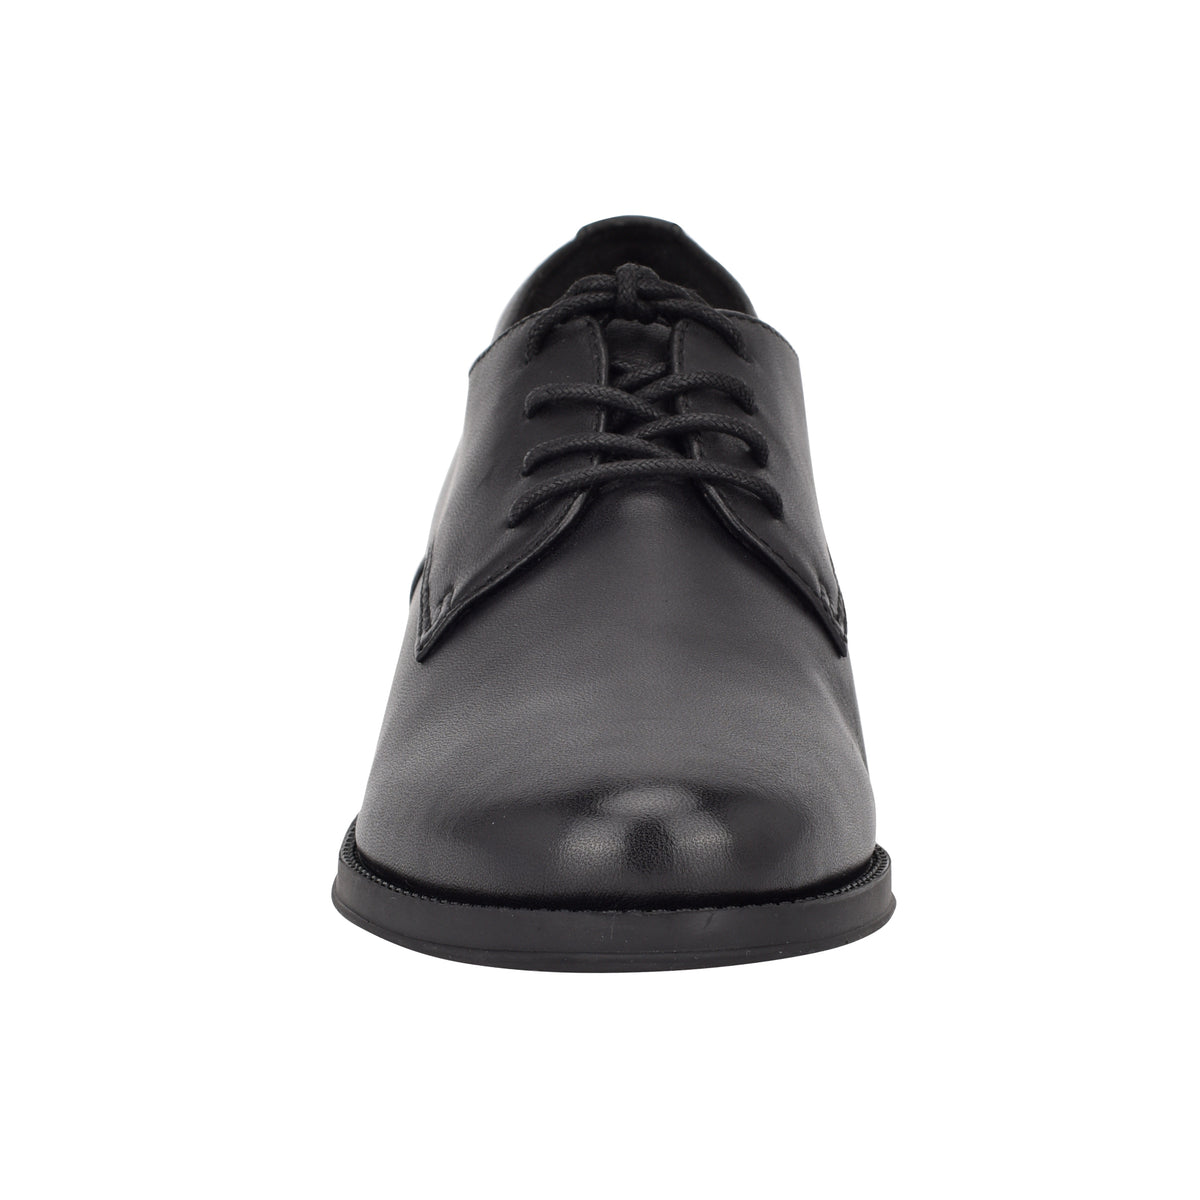 Rania Lace Up Oxfords